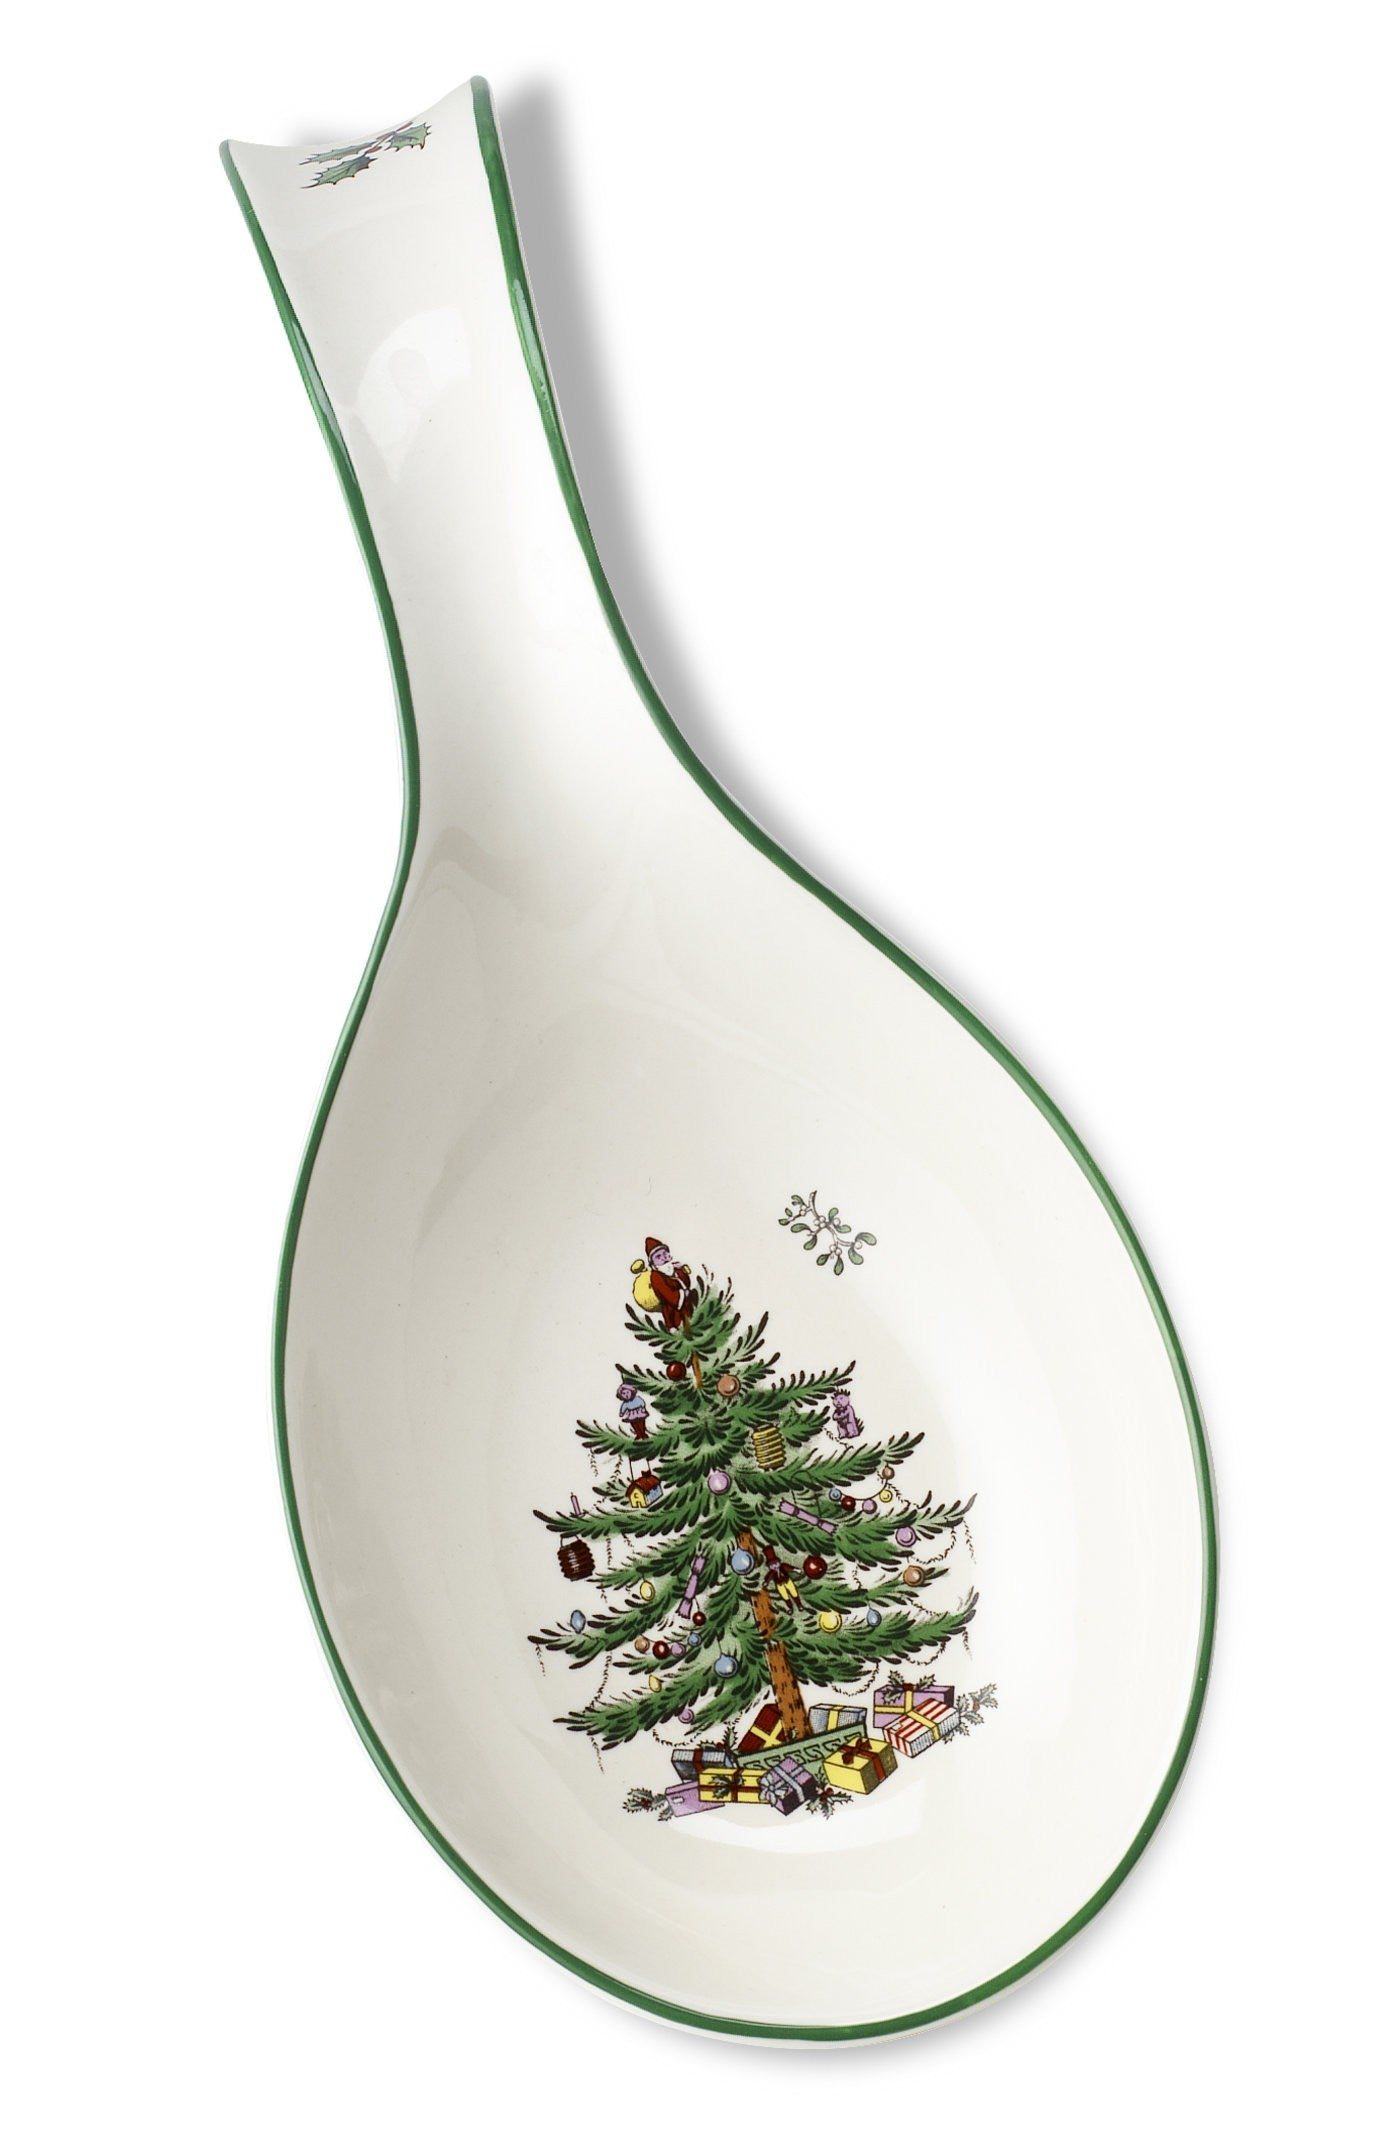 Spode Christmas Tree Spoon Rest